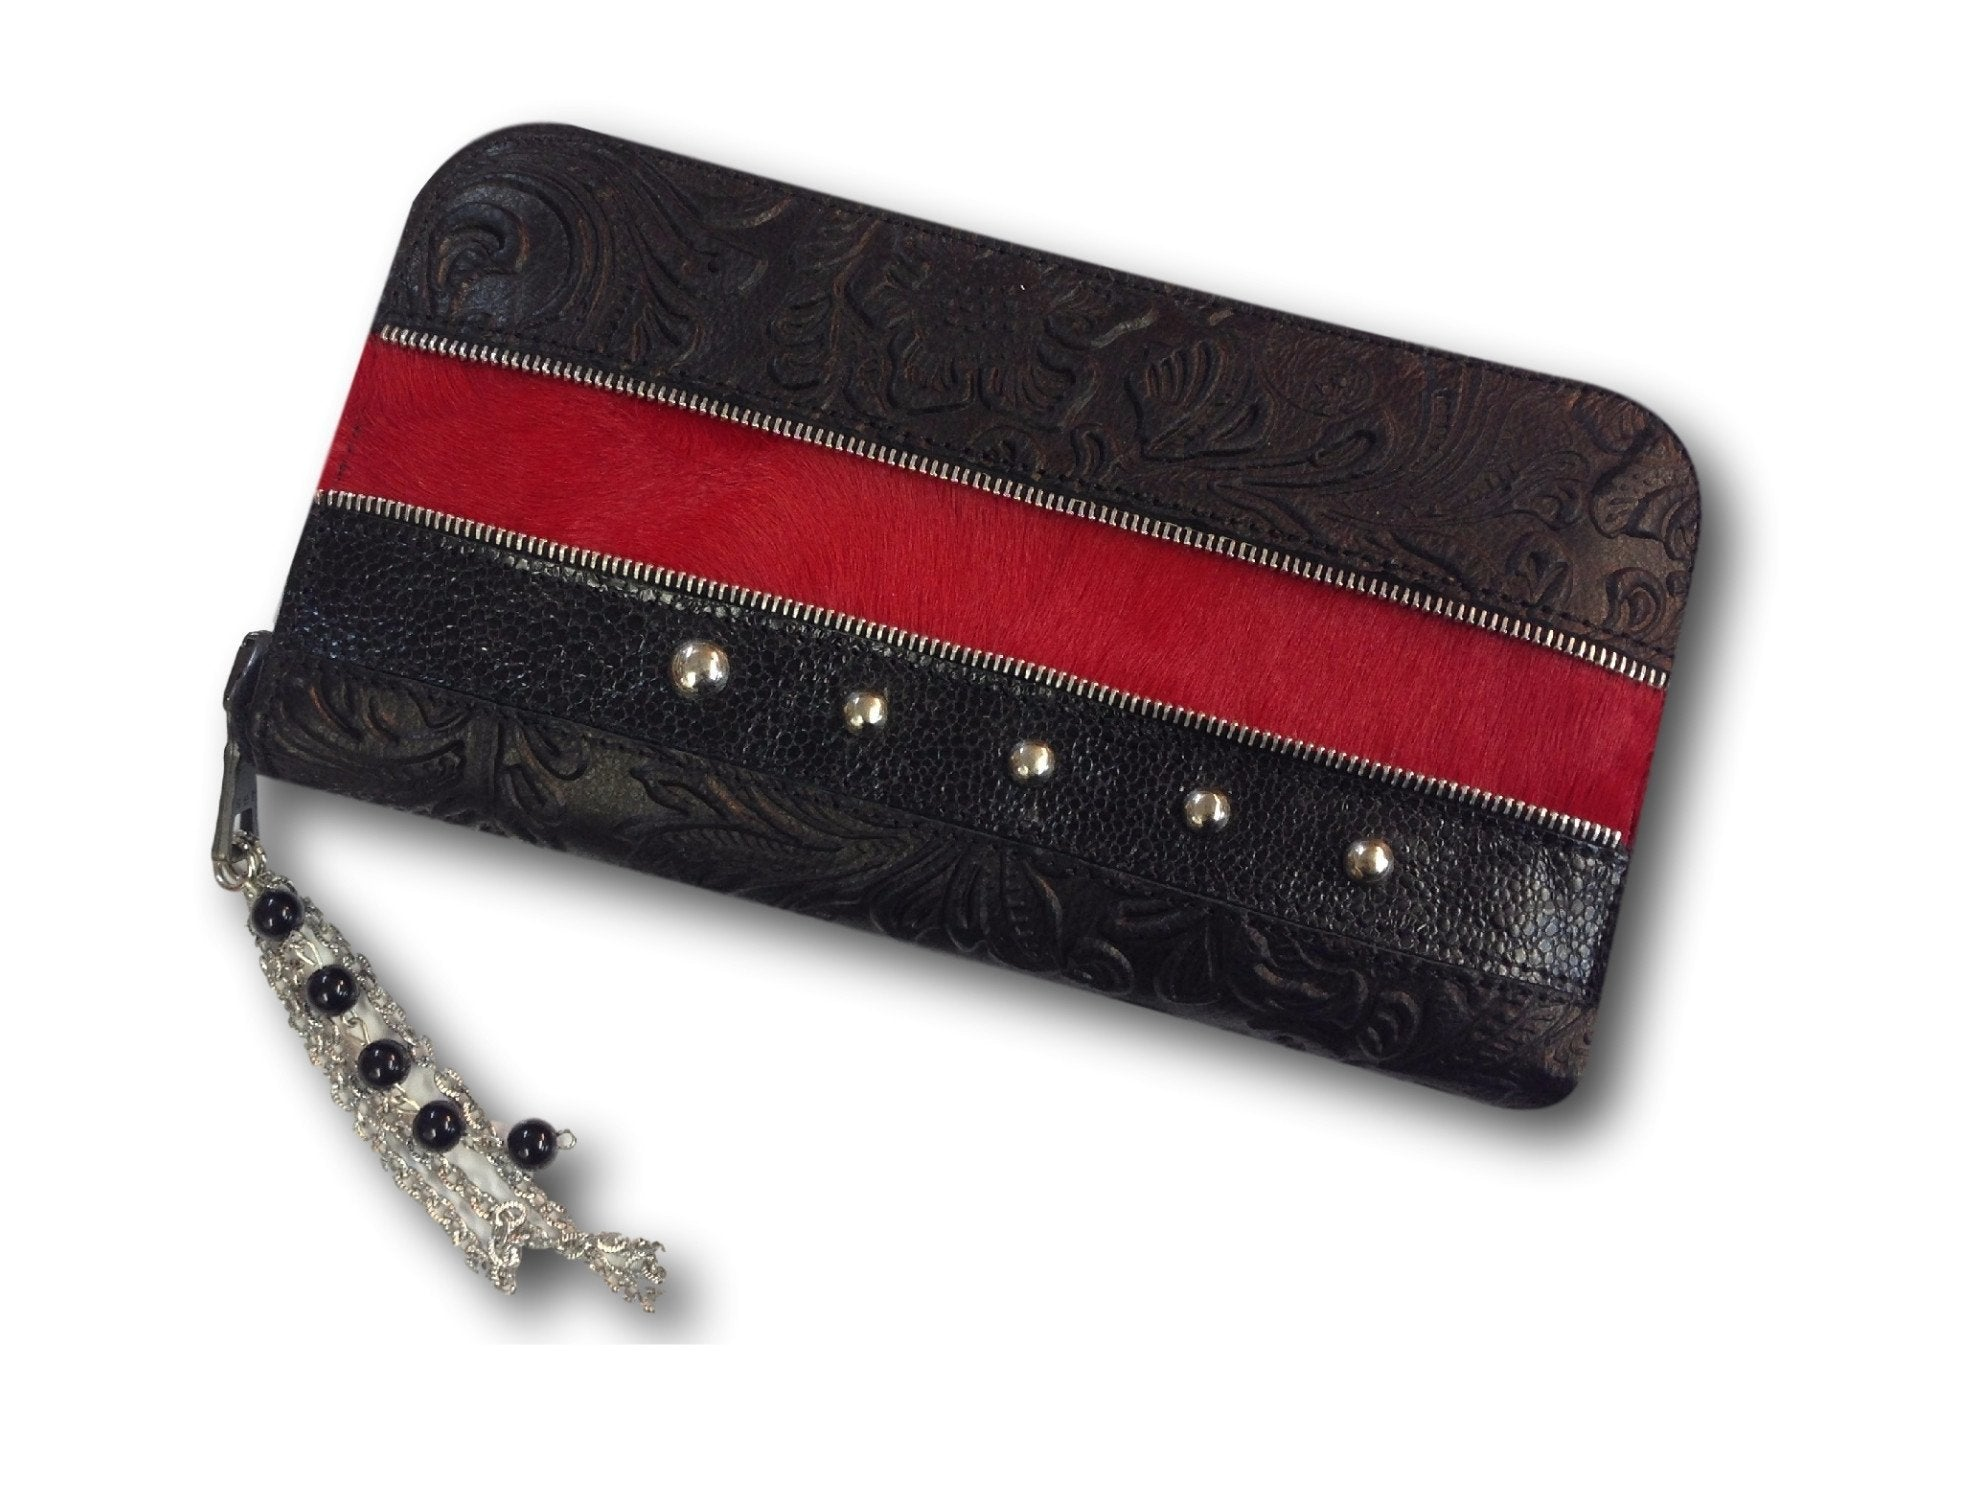 Handmade leather wallet (red/black)